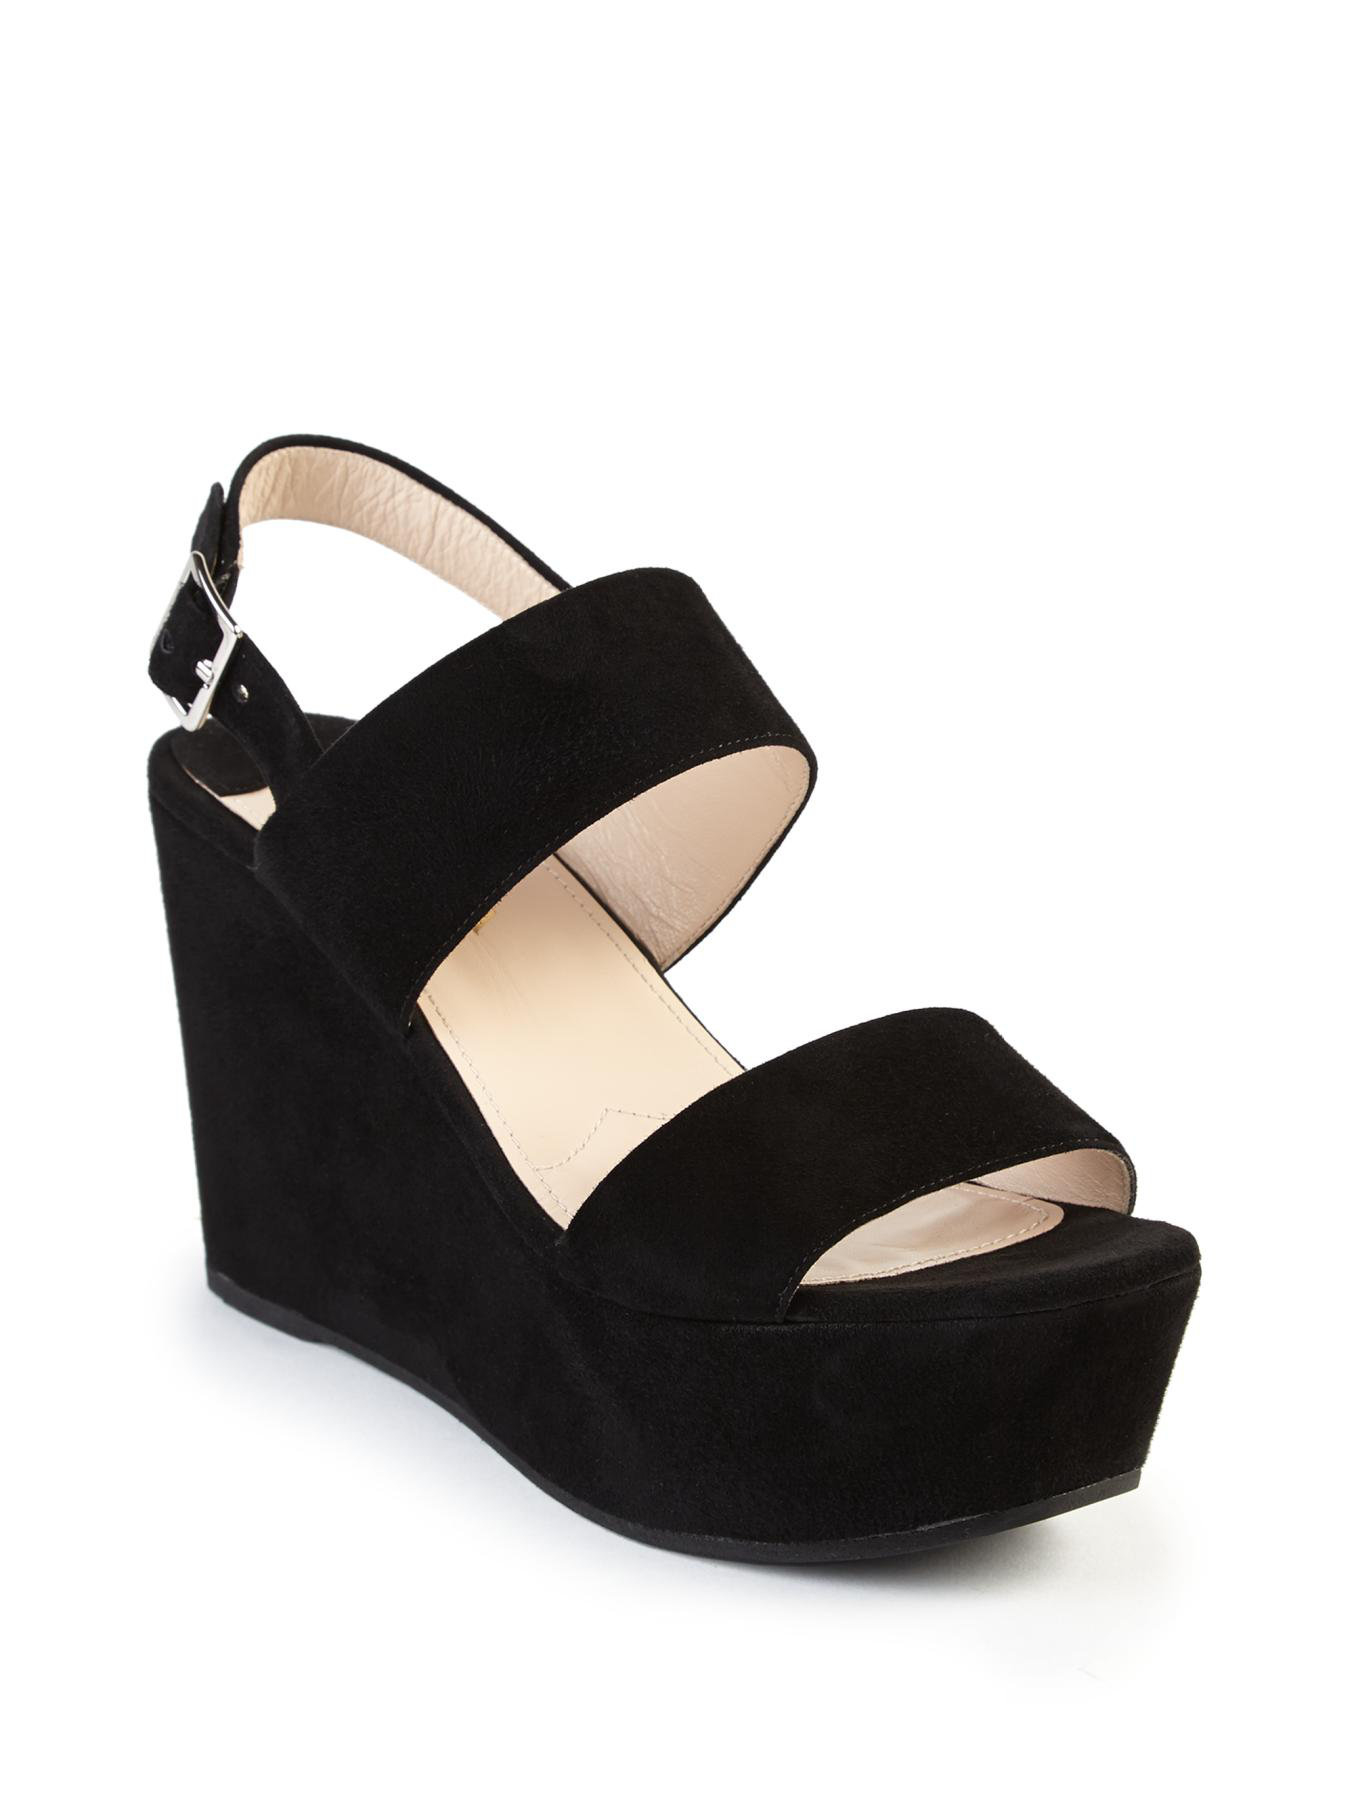 Once you start, you won't be able to stop talking about how cute the CL by Laundry Go On Black Suede Platform Ankle Strap Heels are! Soft, vegan suede covers these brag-worthy platform heels with a wide peep-toe strap, heel cup with cutout detail, and adjustable ankle strap (with gold buckle). 1